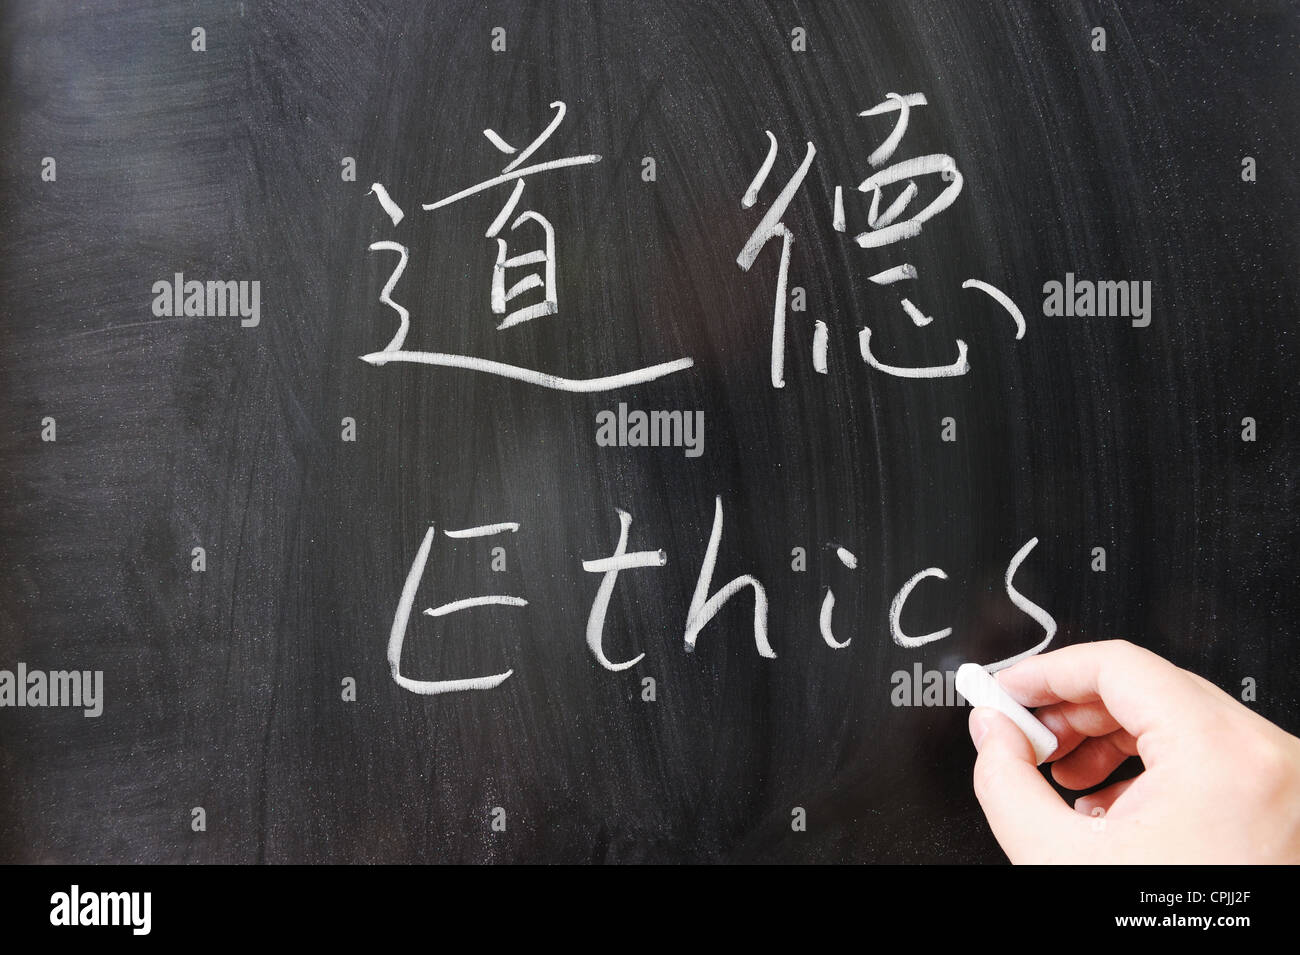 Ethics word in Chinese and English written on the chalkboard - Stock Image